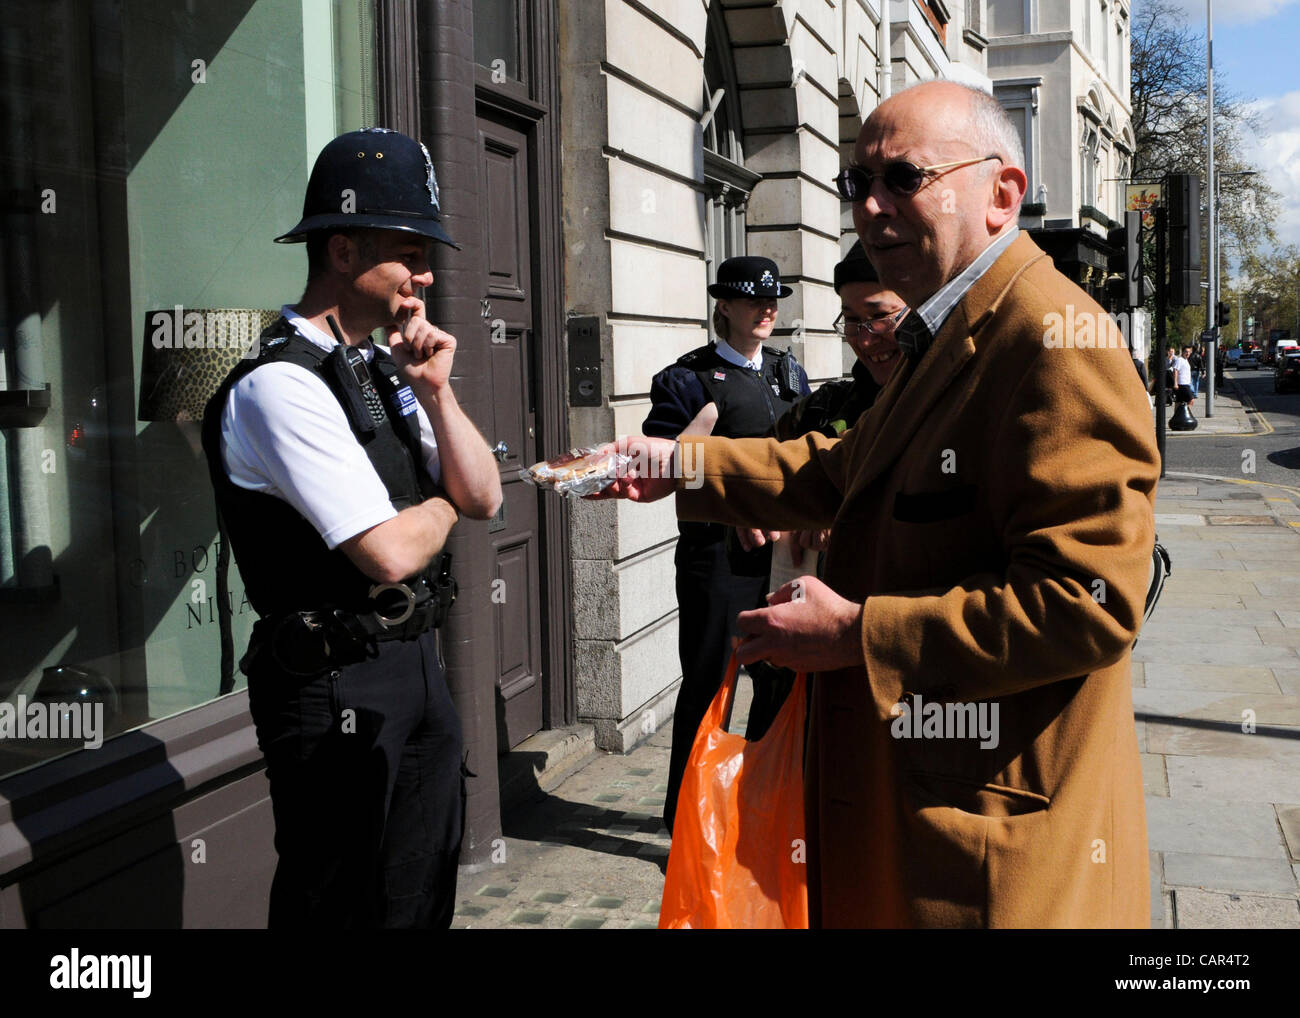 London, UK. 11/04/12. Anarchist, Ian Bone hands a pasty to a policeman. He was delivering pasties to Chancellor - Stock Image